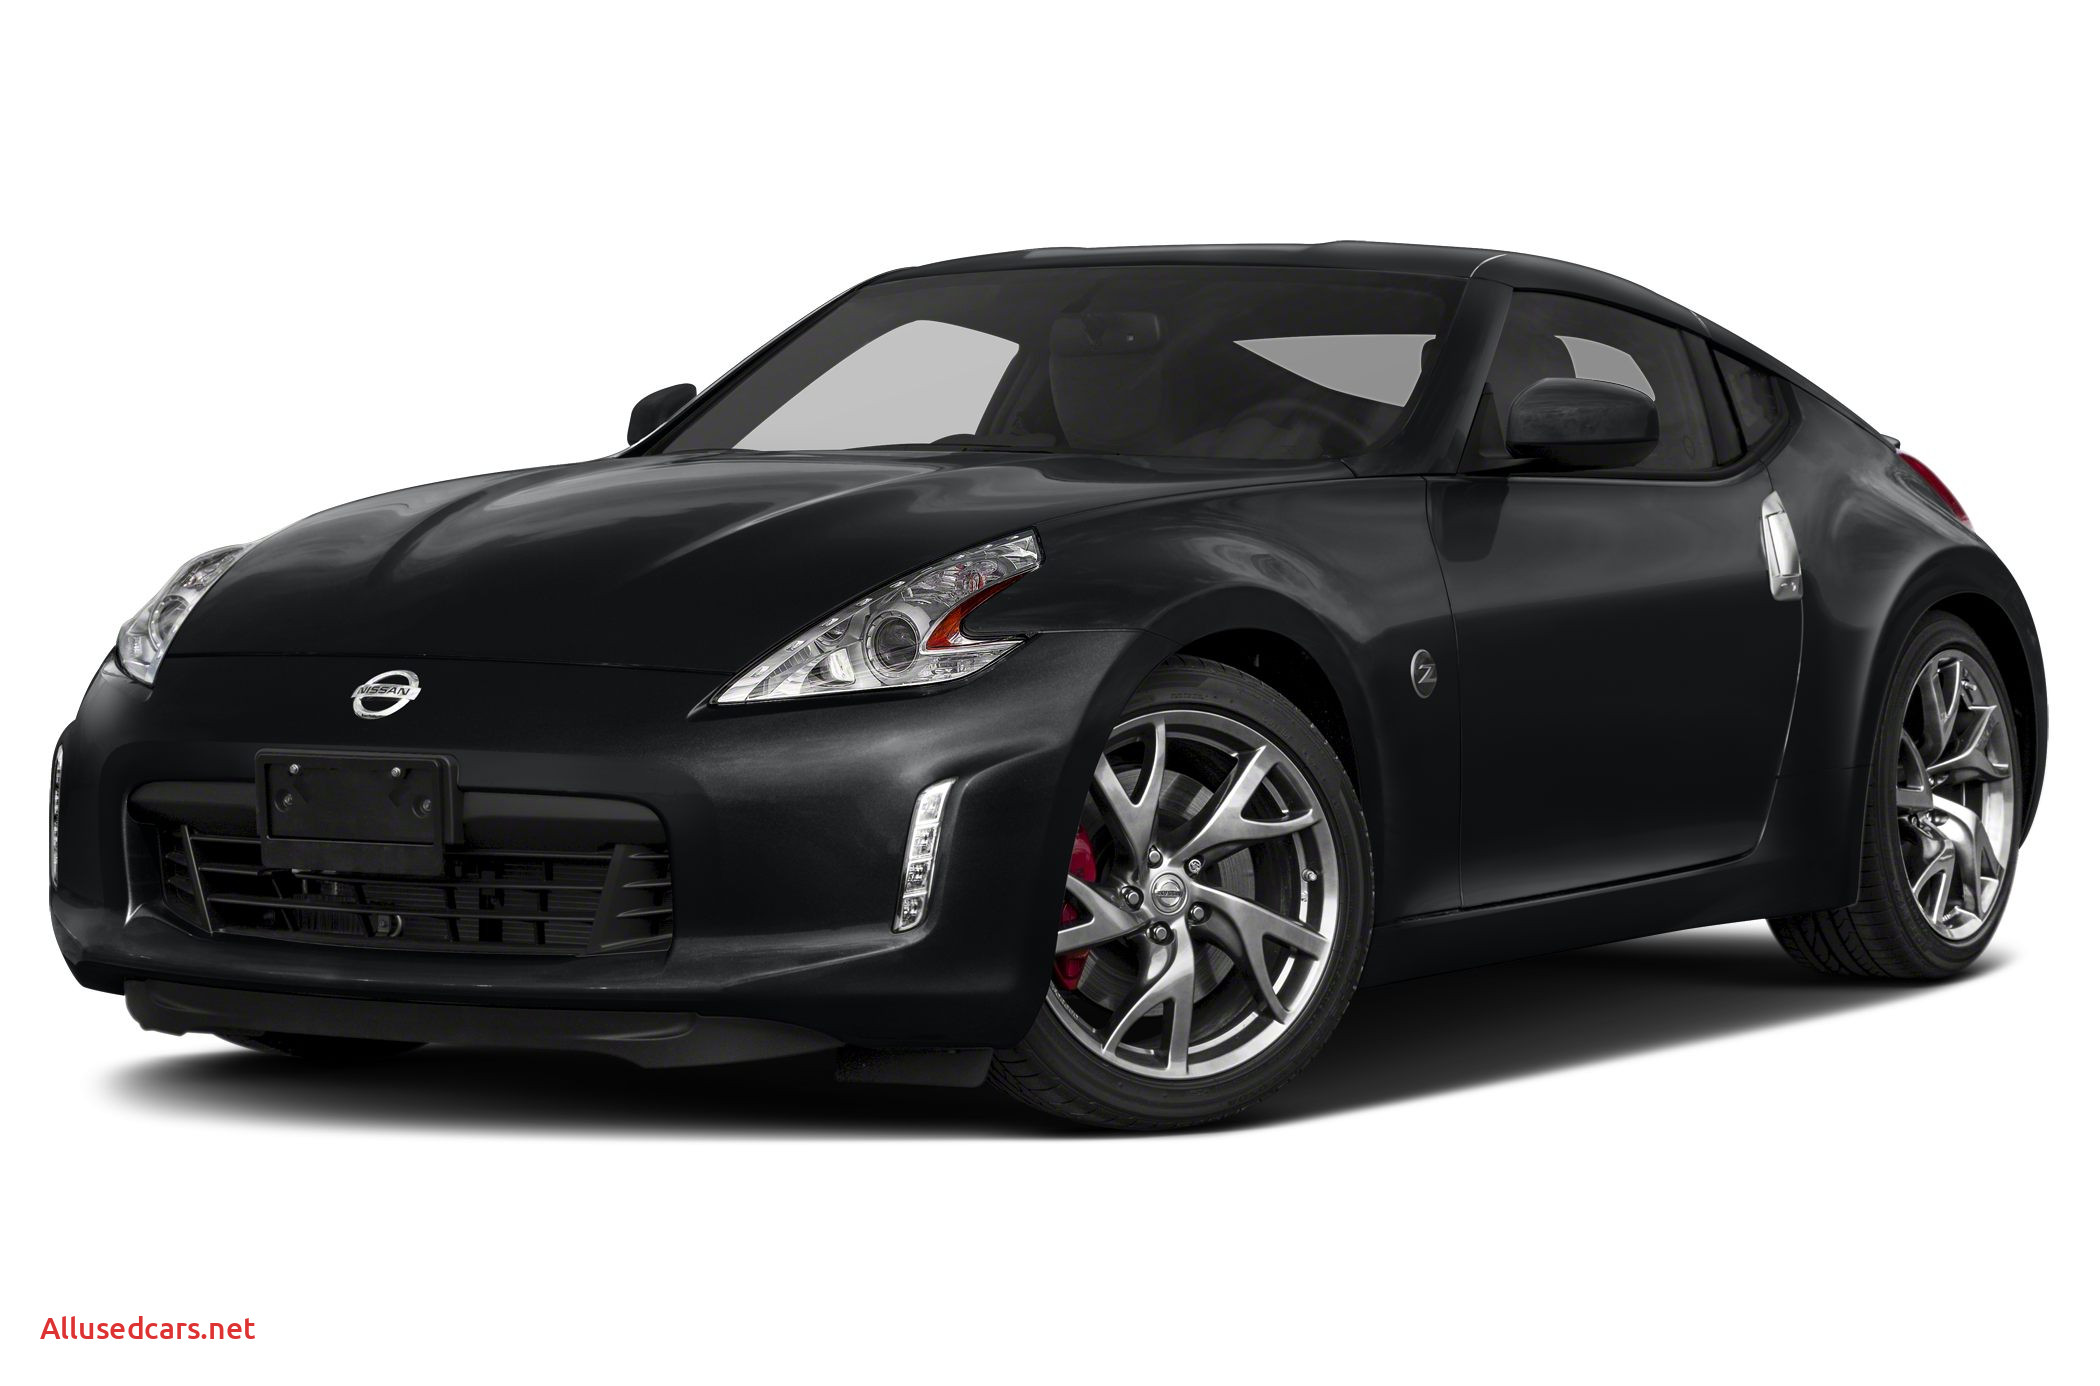 Nissan Z Cars for Sale Near Me Best Of 2017 Nissan 370z Specs and Prices